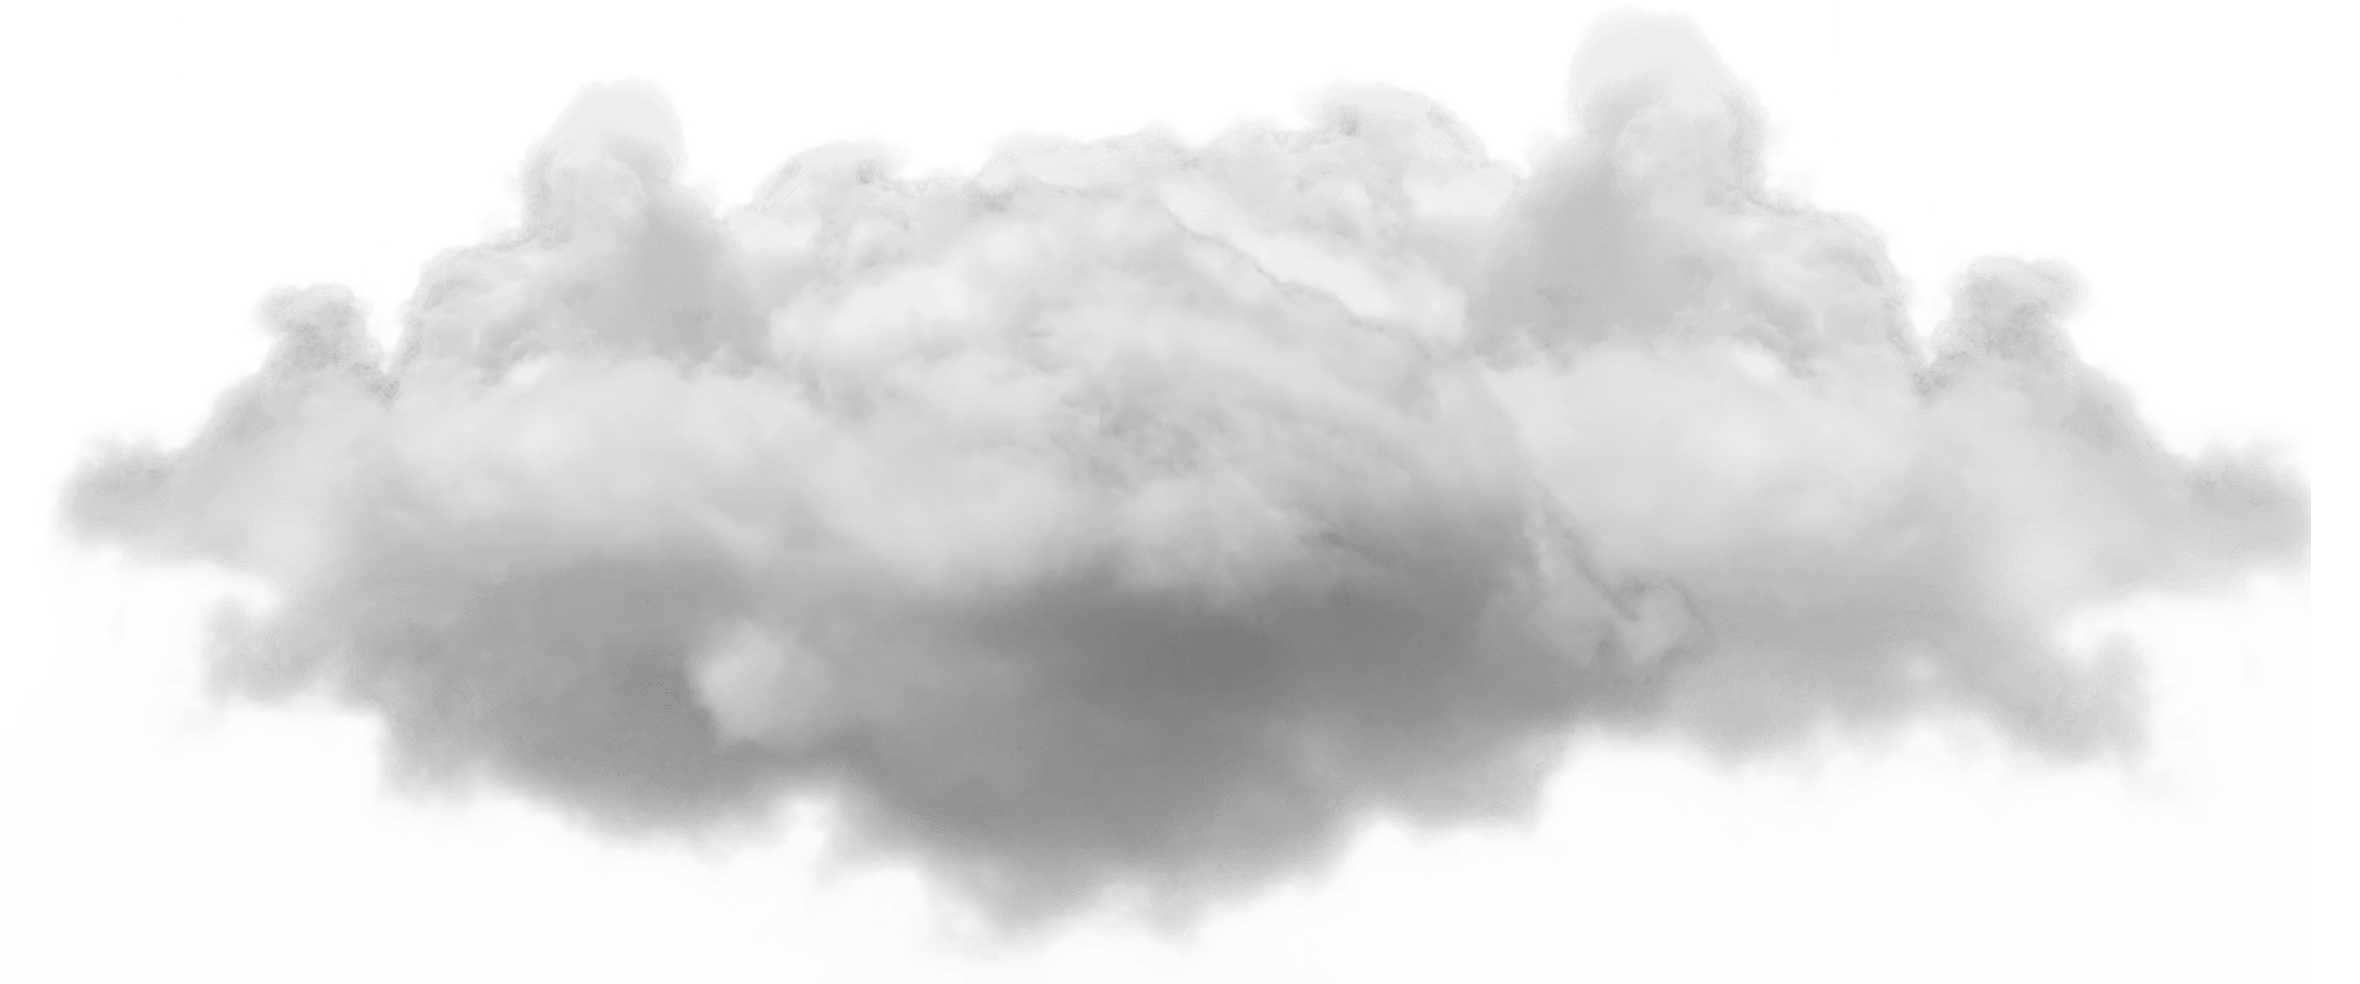 Small Single Cloud transparent PNG.